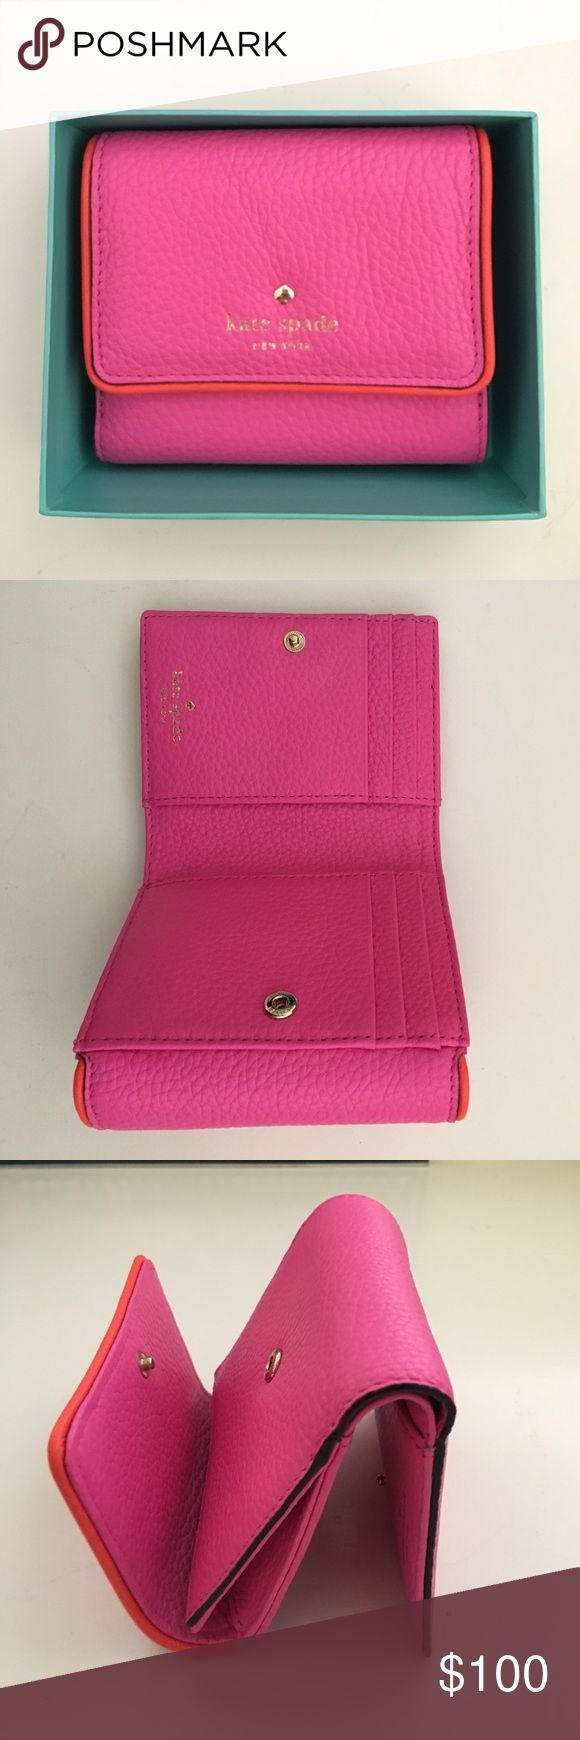 Kate Spade Tavy Wallet Brand new with tags, original box, & care card. Never used. Lots of space & compartments. Compresses into a cute tiny form. Front coin purse & inside had credit card slots & full cash holder space. Kate Spade Bags Wallets